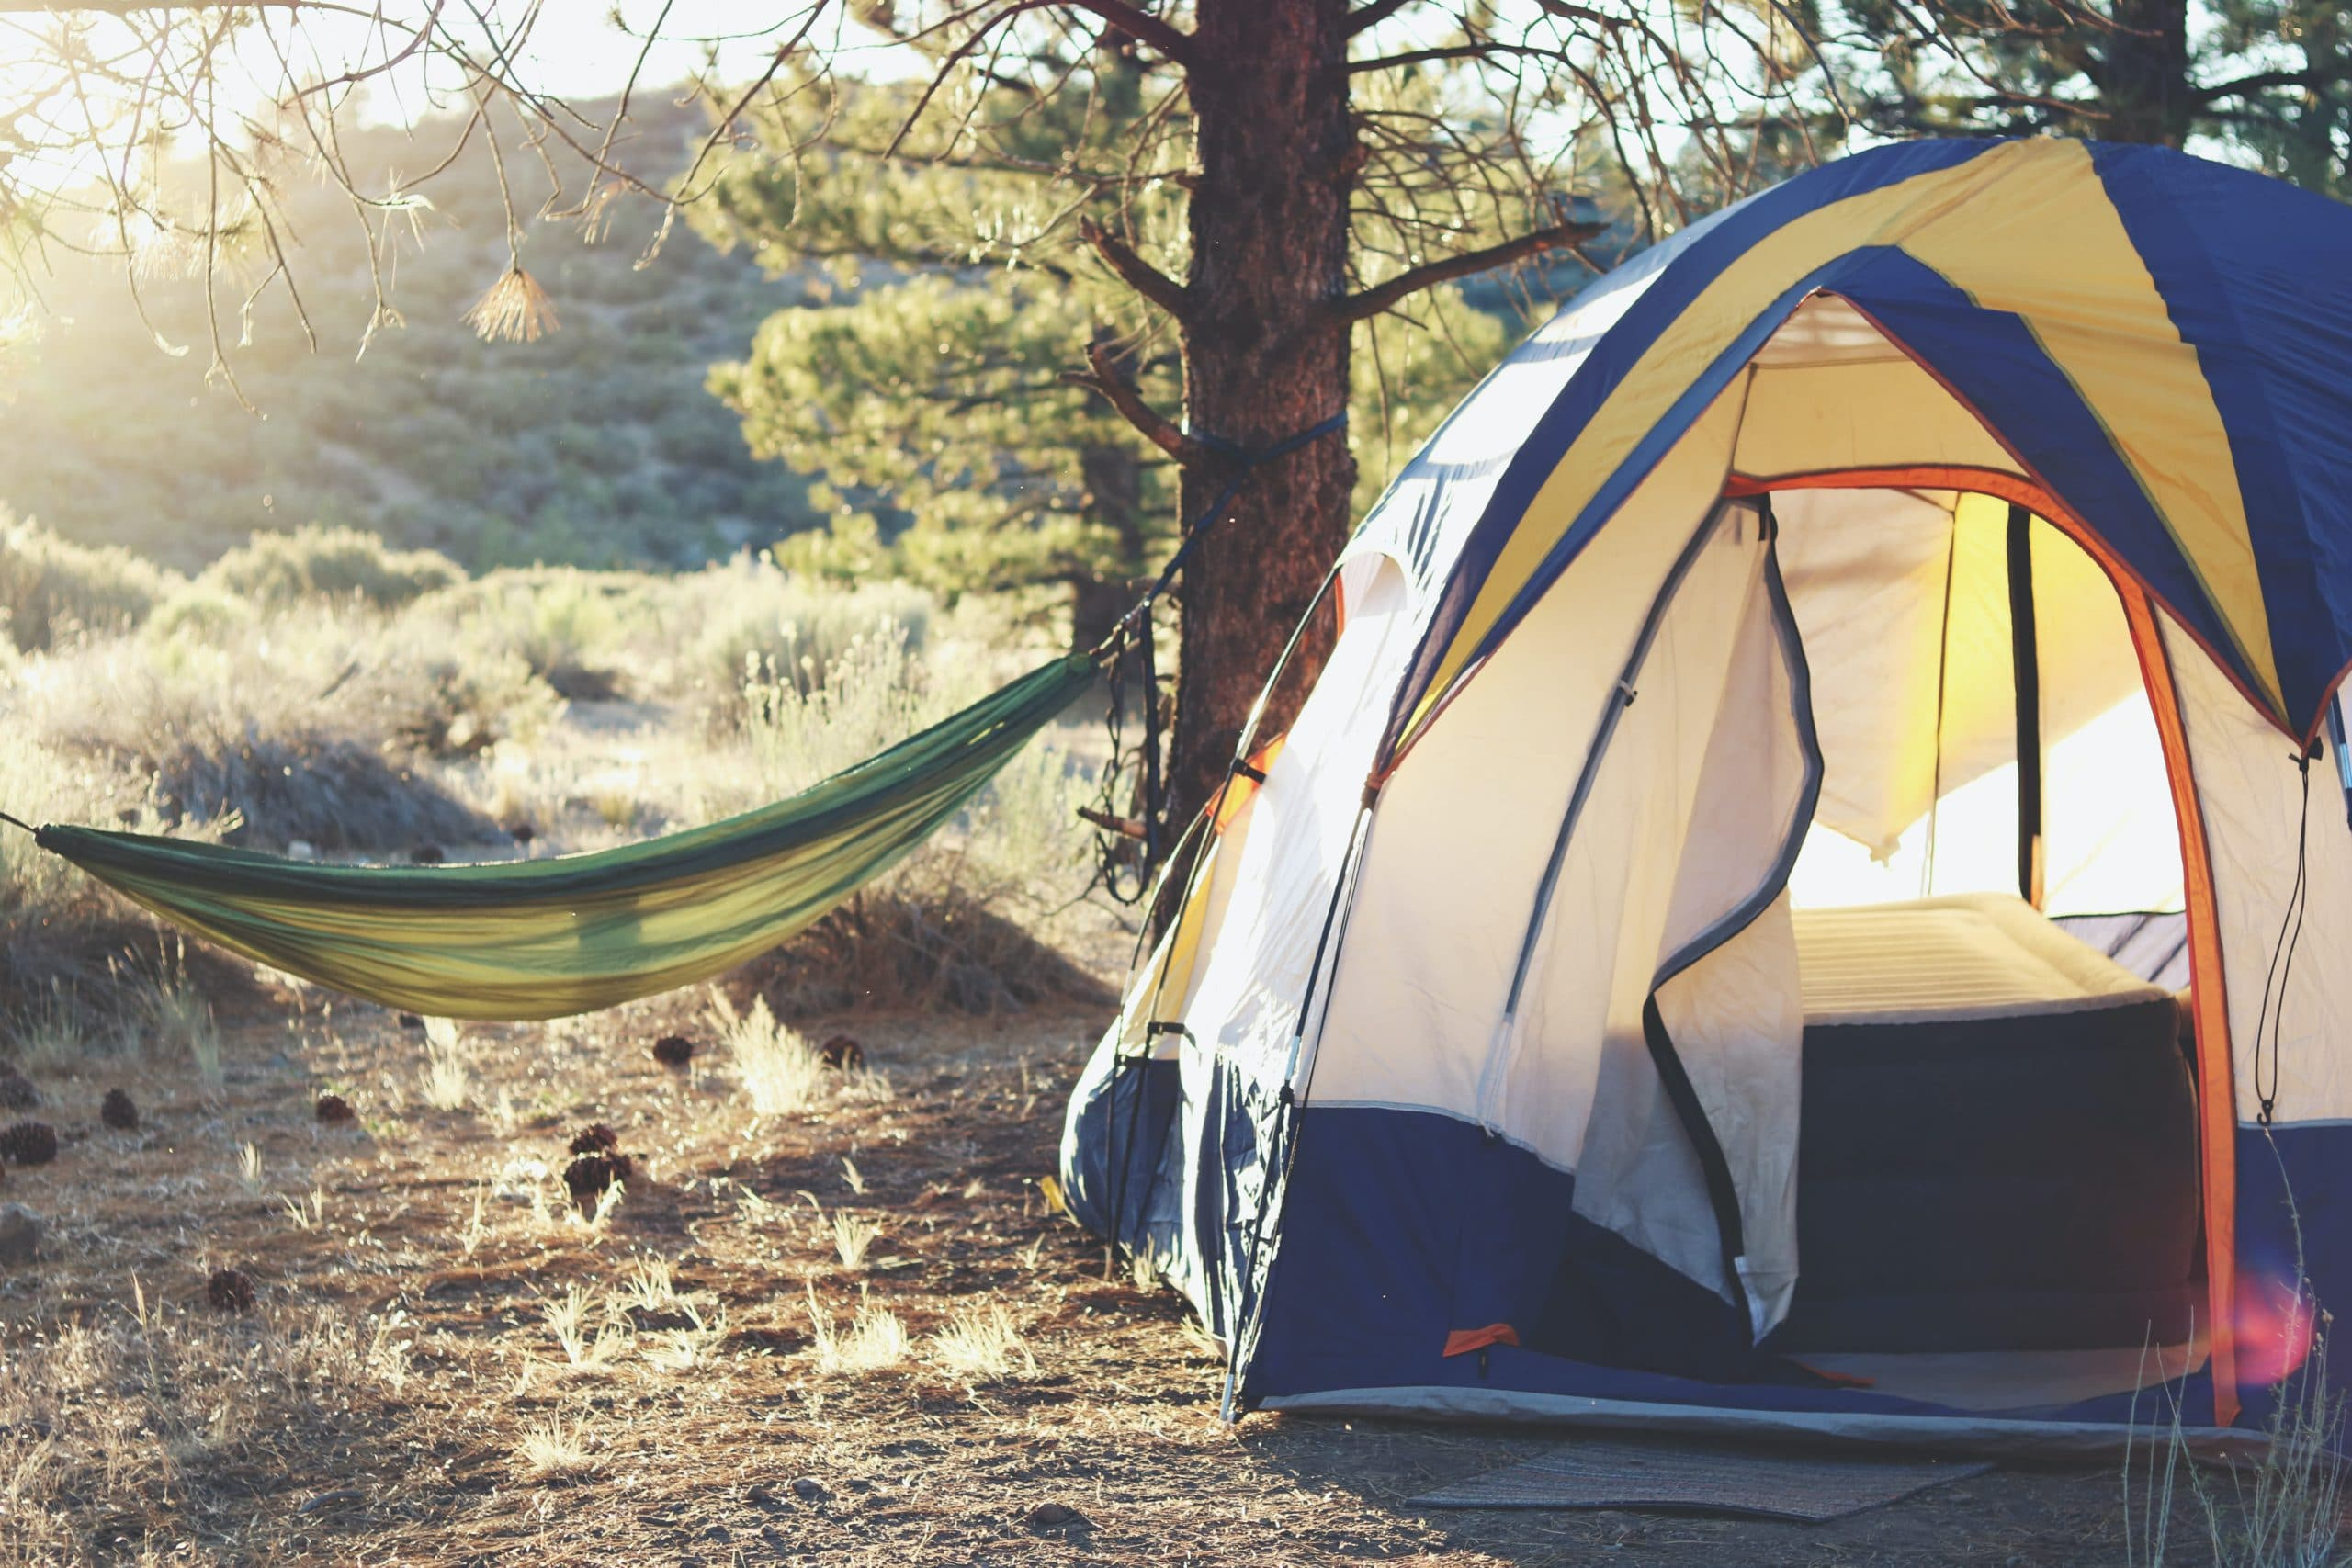 Top Tech To Improve Your Camping Experience